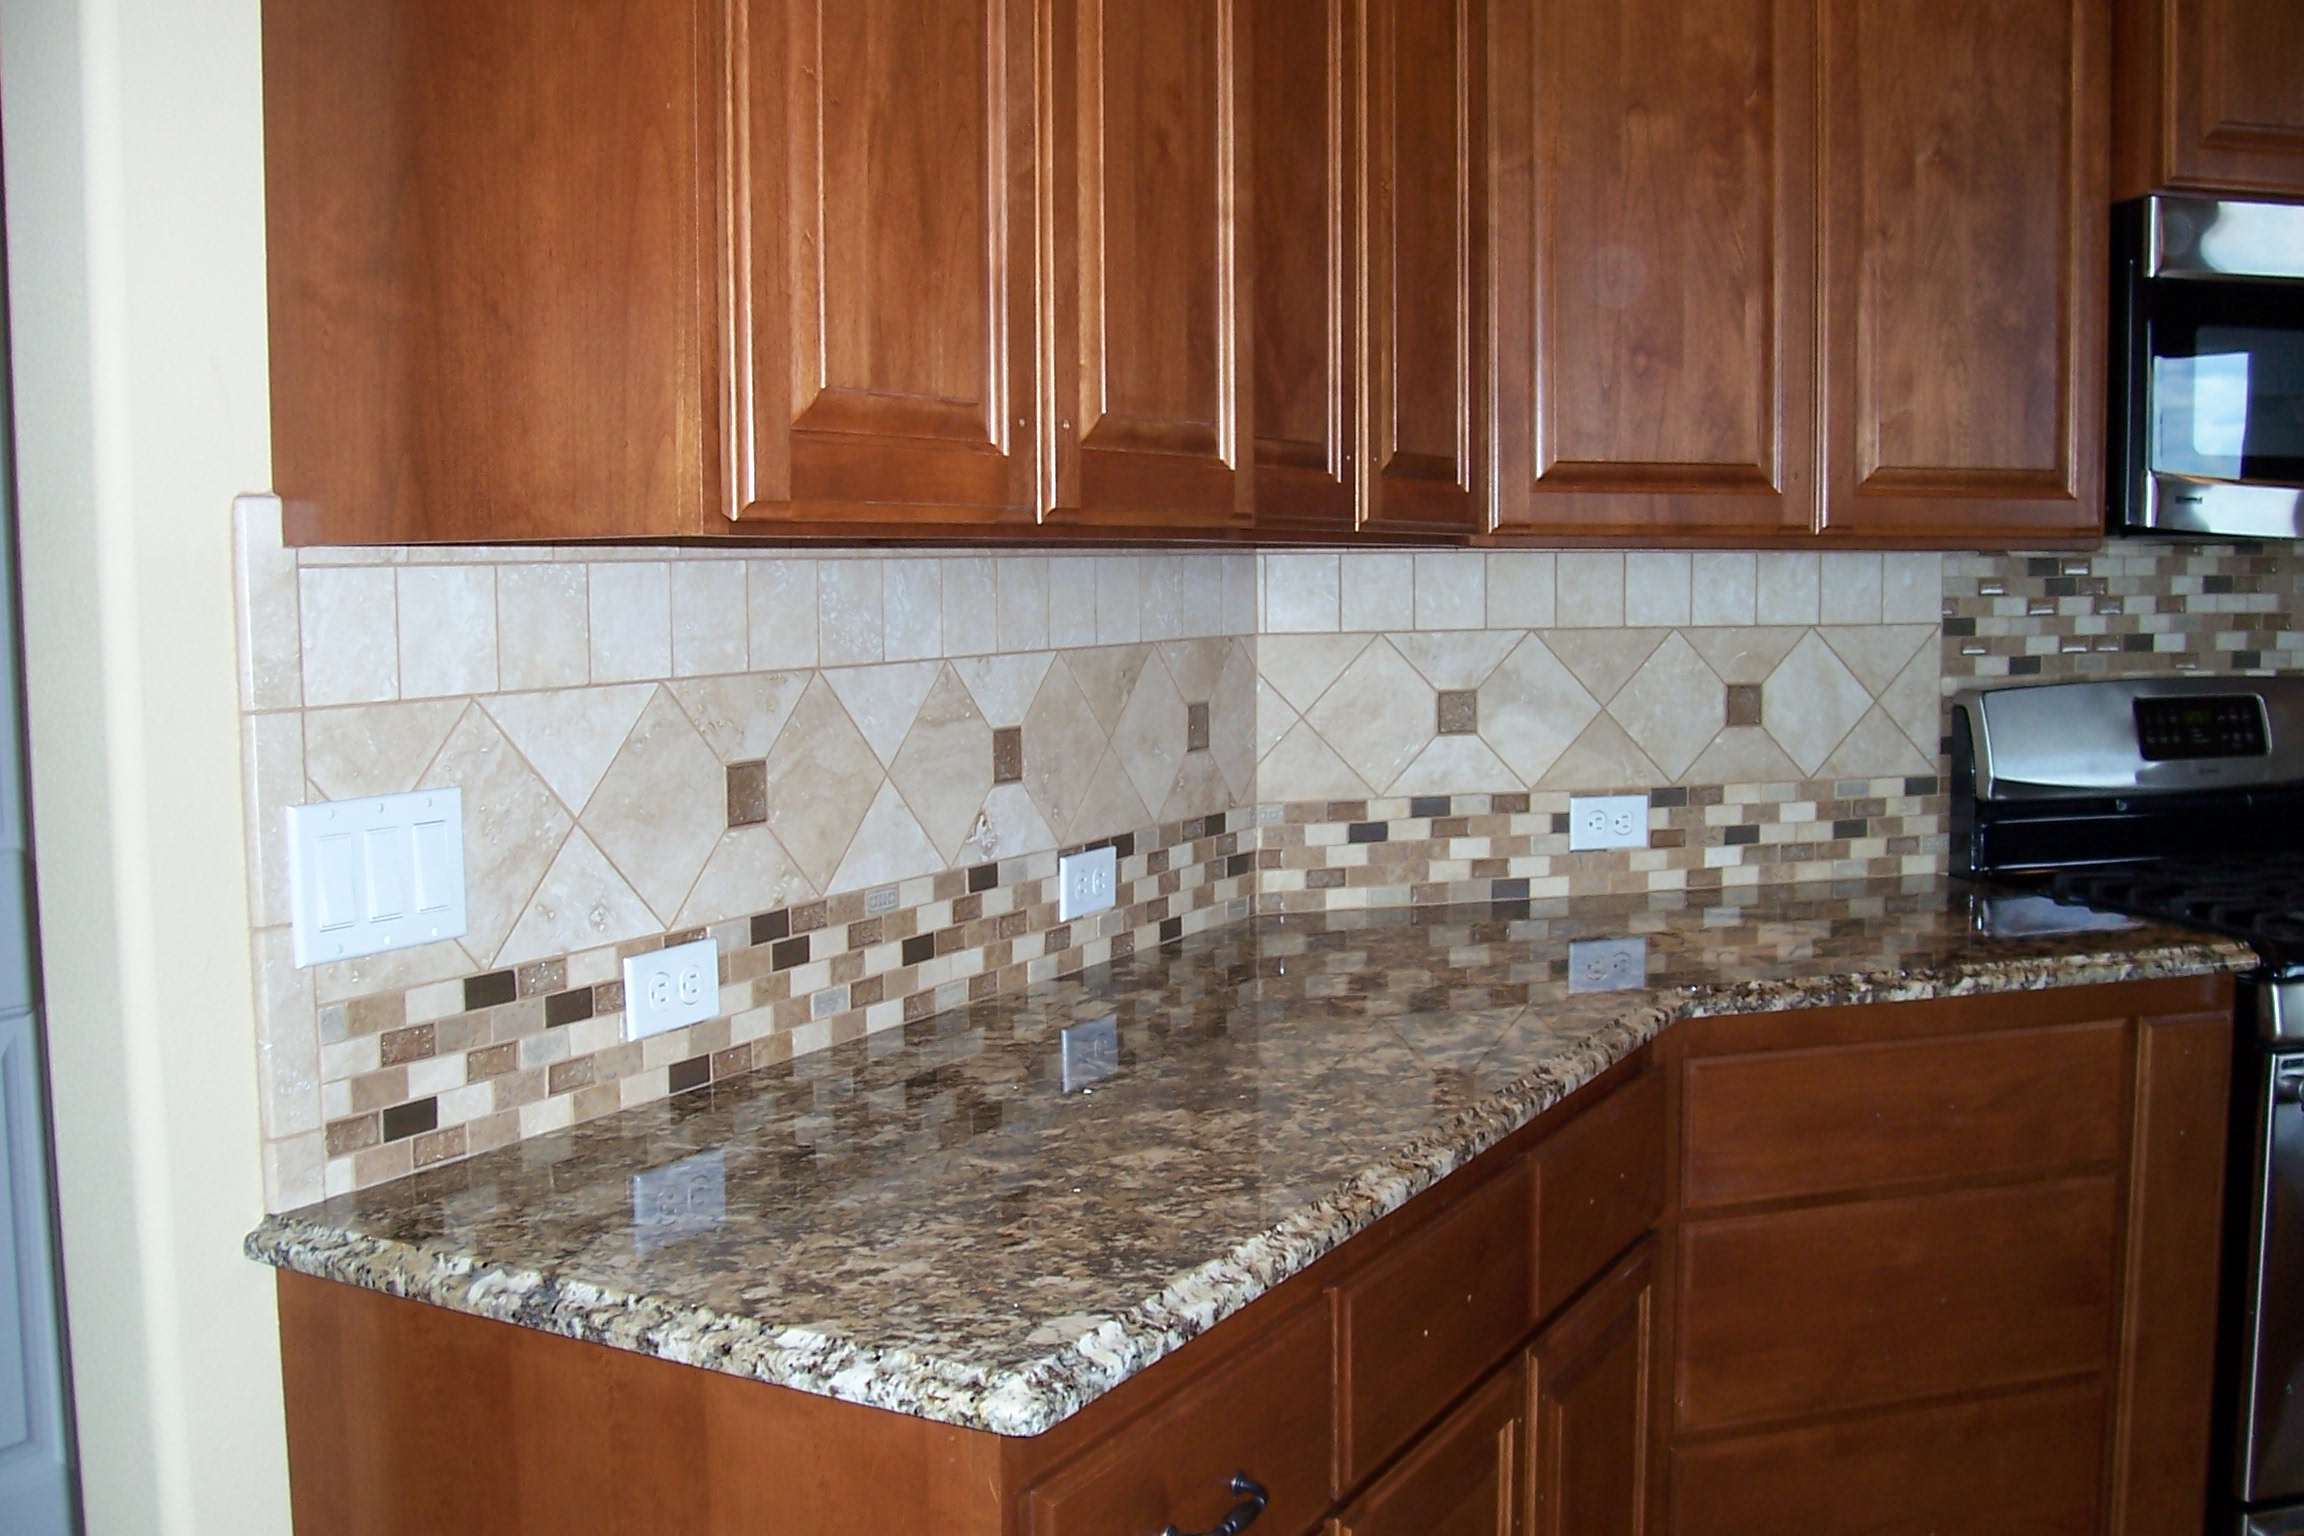 301 moved permanently - Backsplash design ...